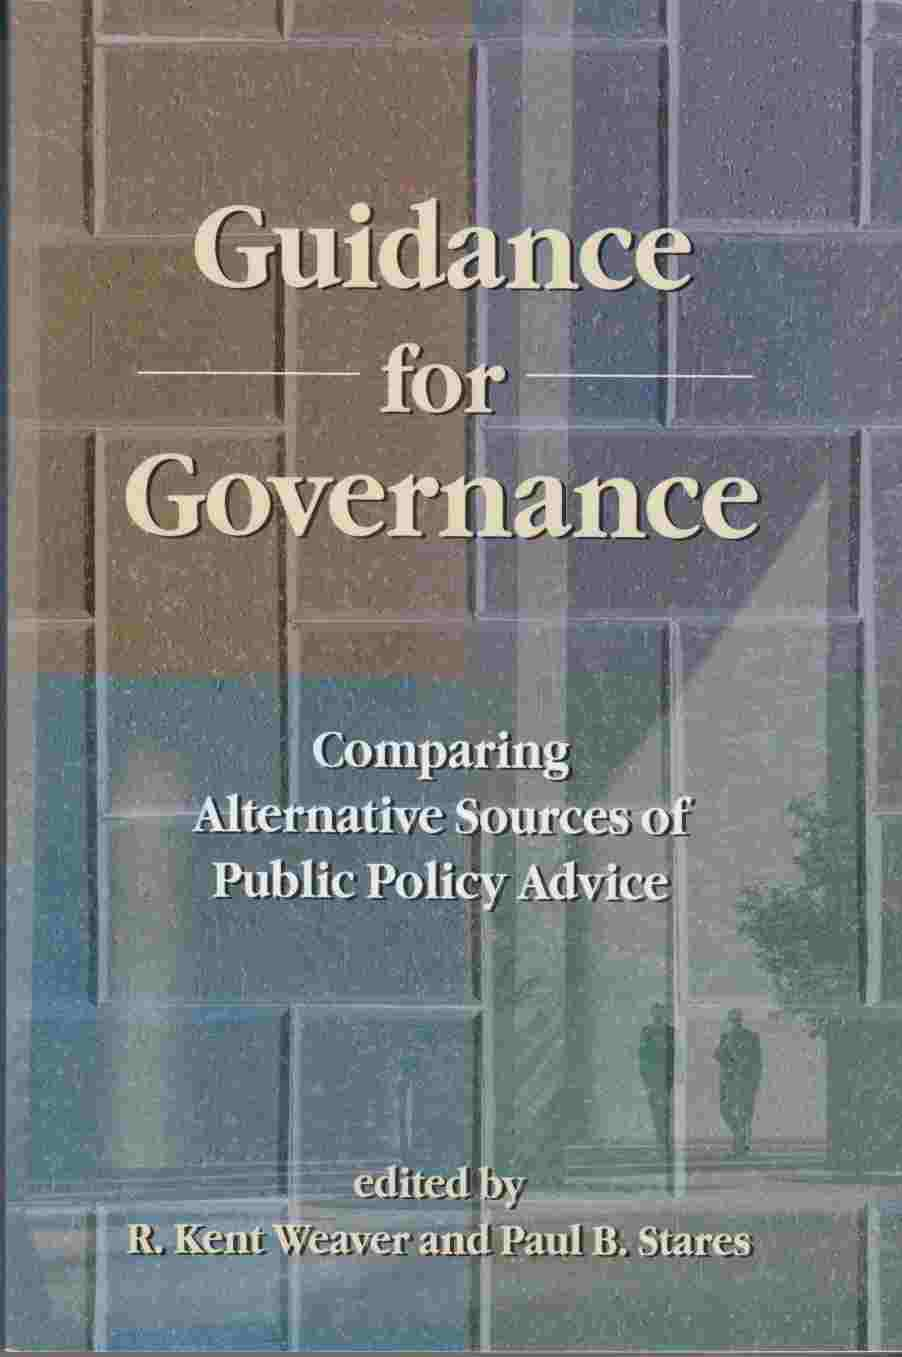 Image for Guidance for Governance:  Comparing Alternative Sources of Public Policy Advice